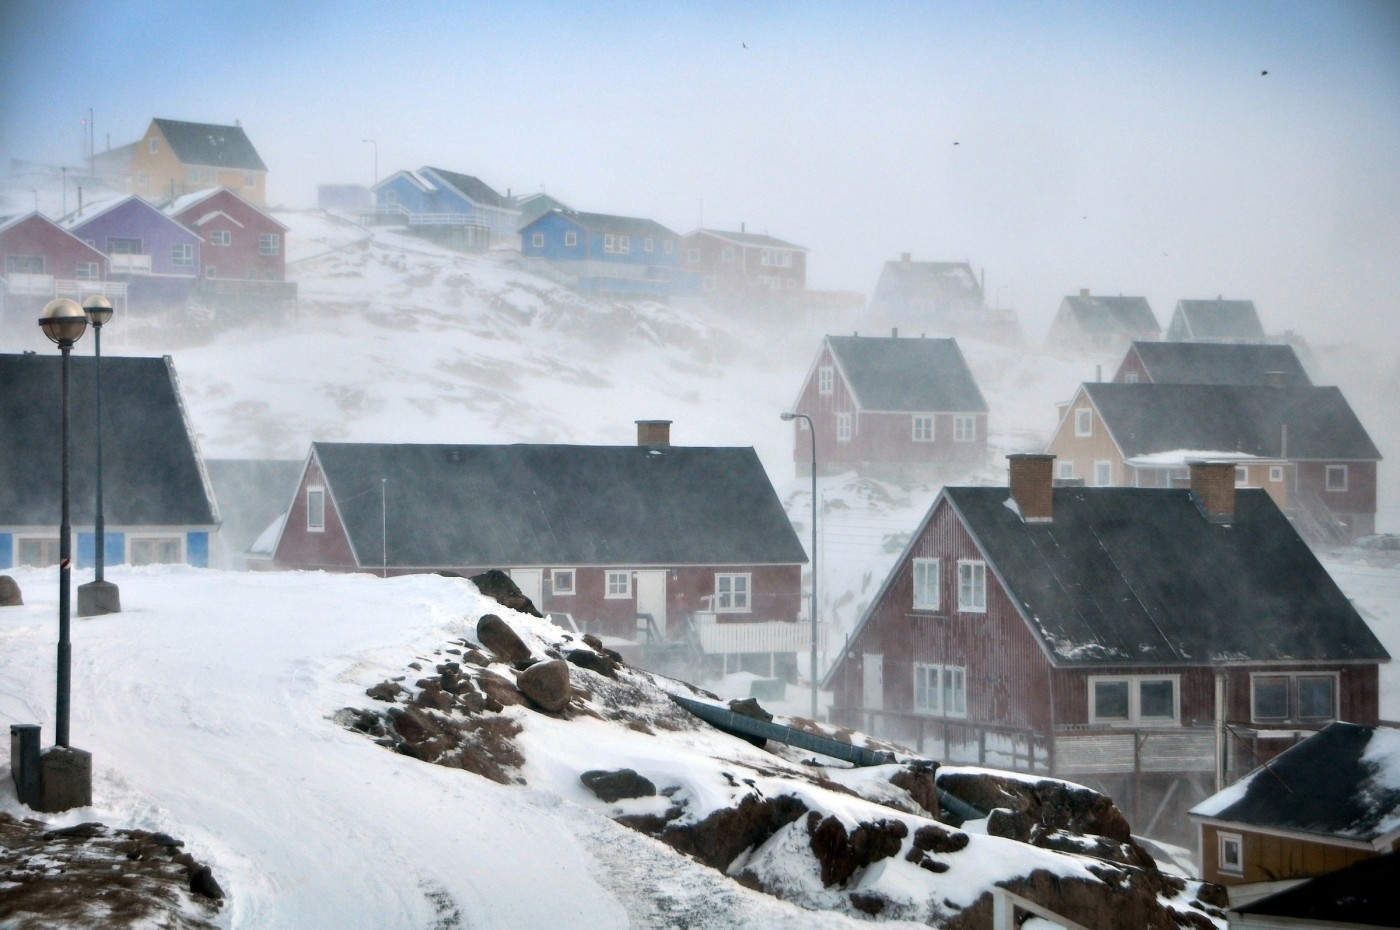 Storm over Sisimiut in Greenland. Photo by Mads Pihl - Visit Greenland